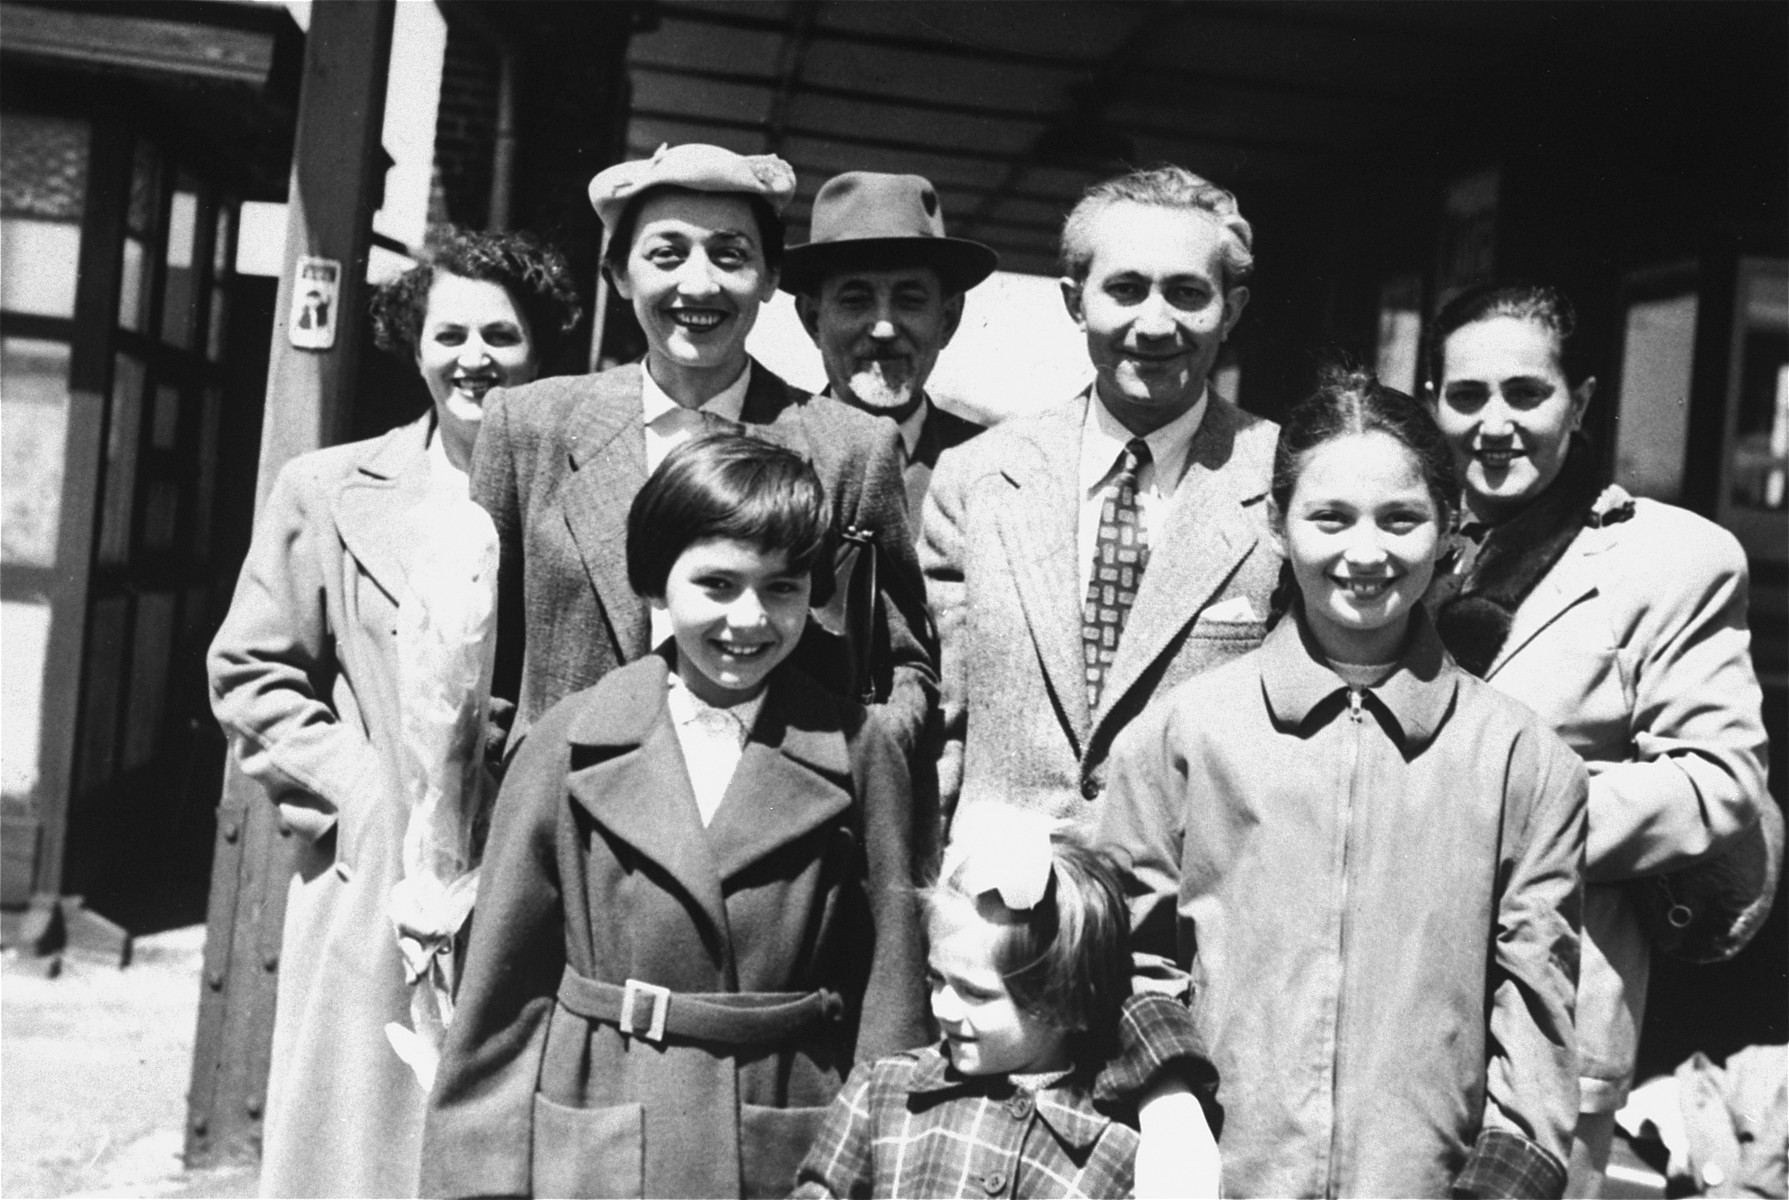 Group portrait of the Ament family at the train station in Antwerp prior to their departure for the United States.  Pictured are: First row, left to right are Jeanine Ament , Eleonore Ament and Miriam Matzner.  Back row (left to right):  Paula  Ament Schwalb, Mania Ament, Chaim-Shia Ament, Marian Ament and Rosia Ament Molkner.